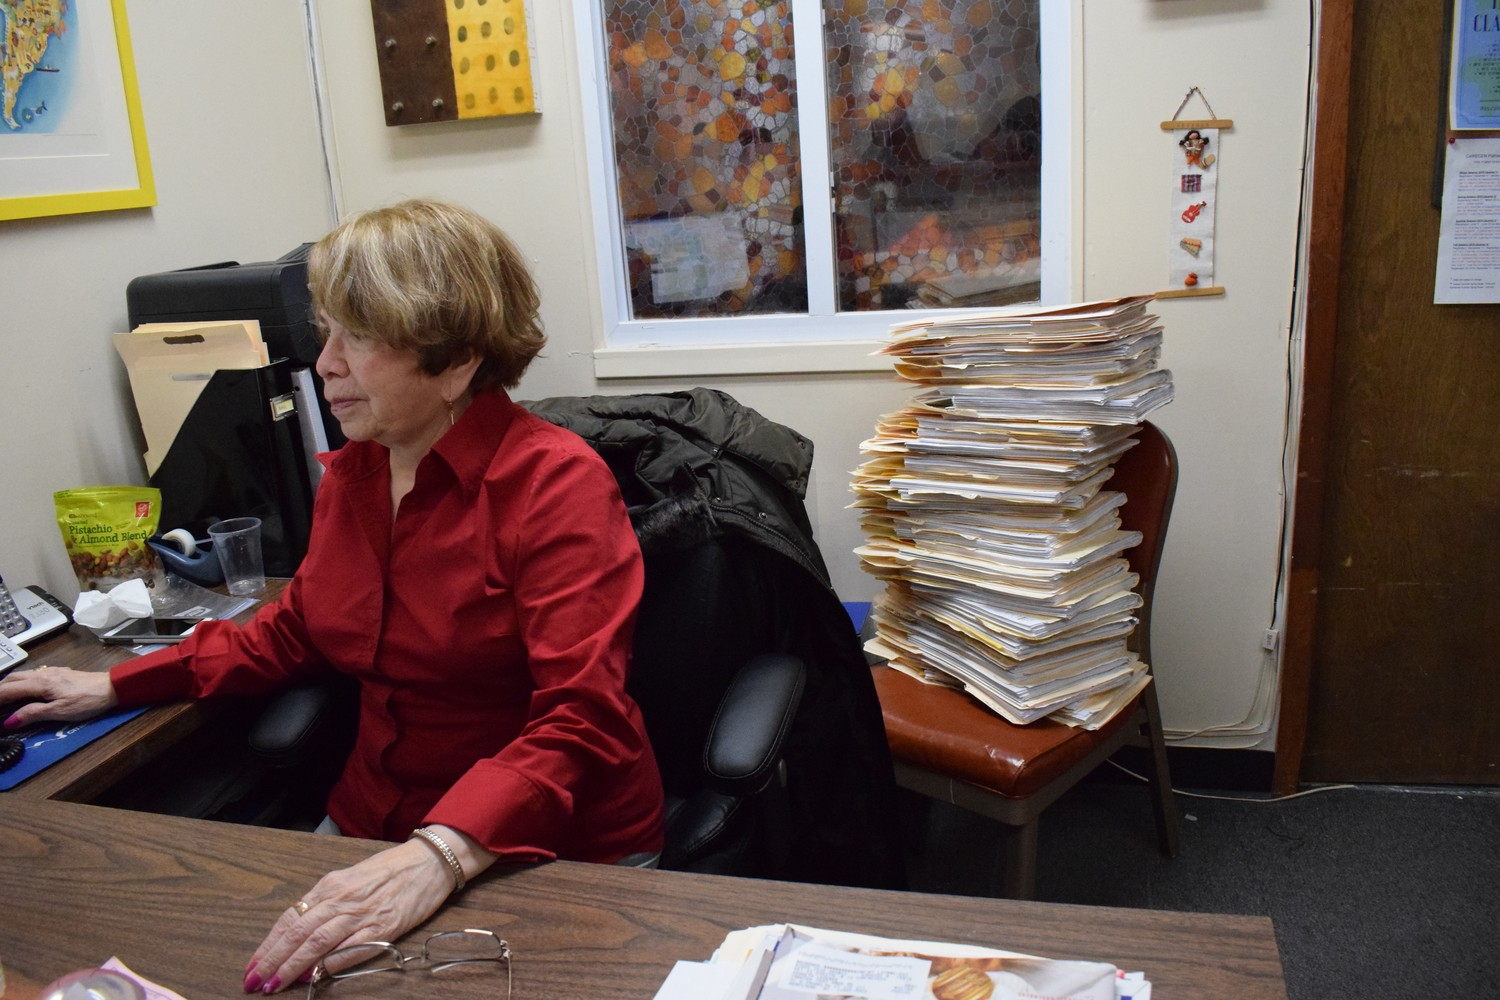 Mariann Mendoza, a volunteer receptionist and paralegal at the Central American Refugee Center in Hempstead, with a stack of TPS-related case files looming behind her.